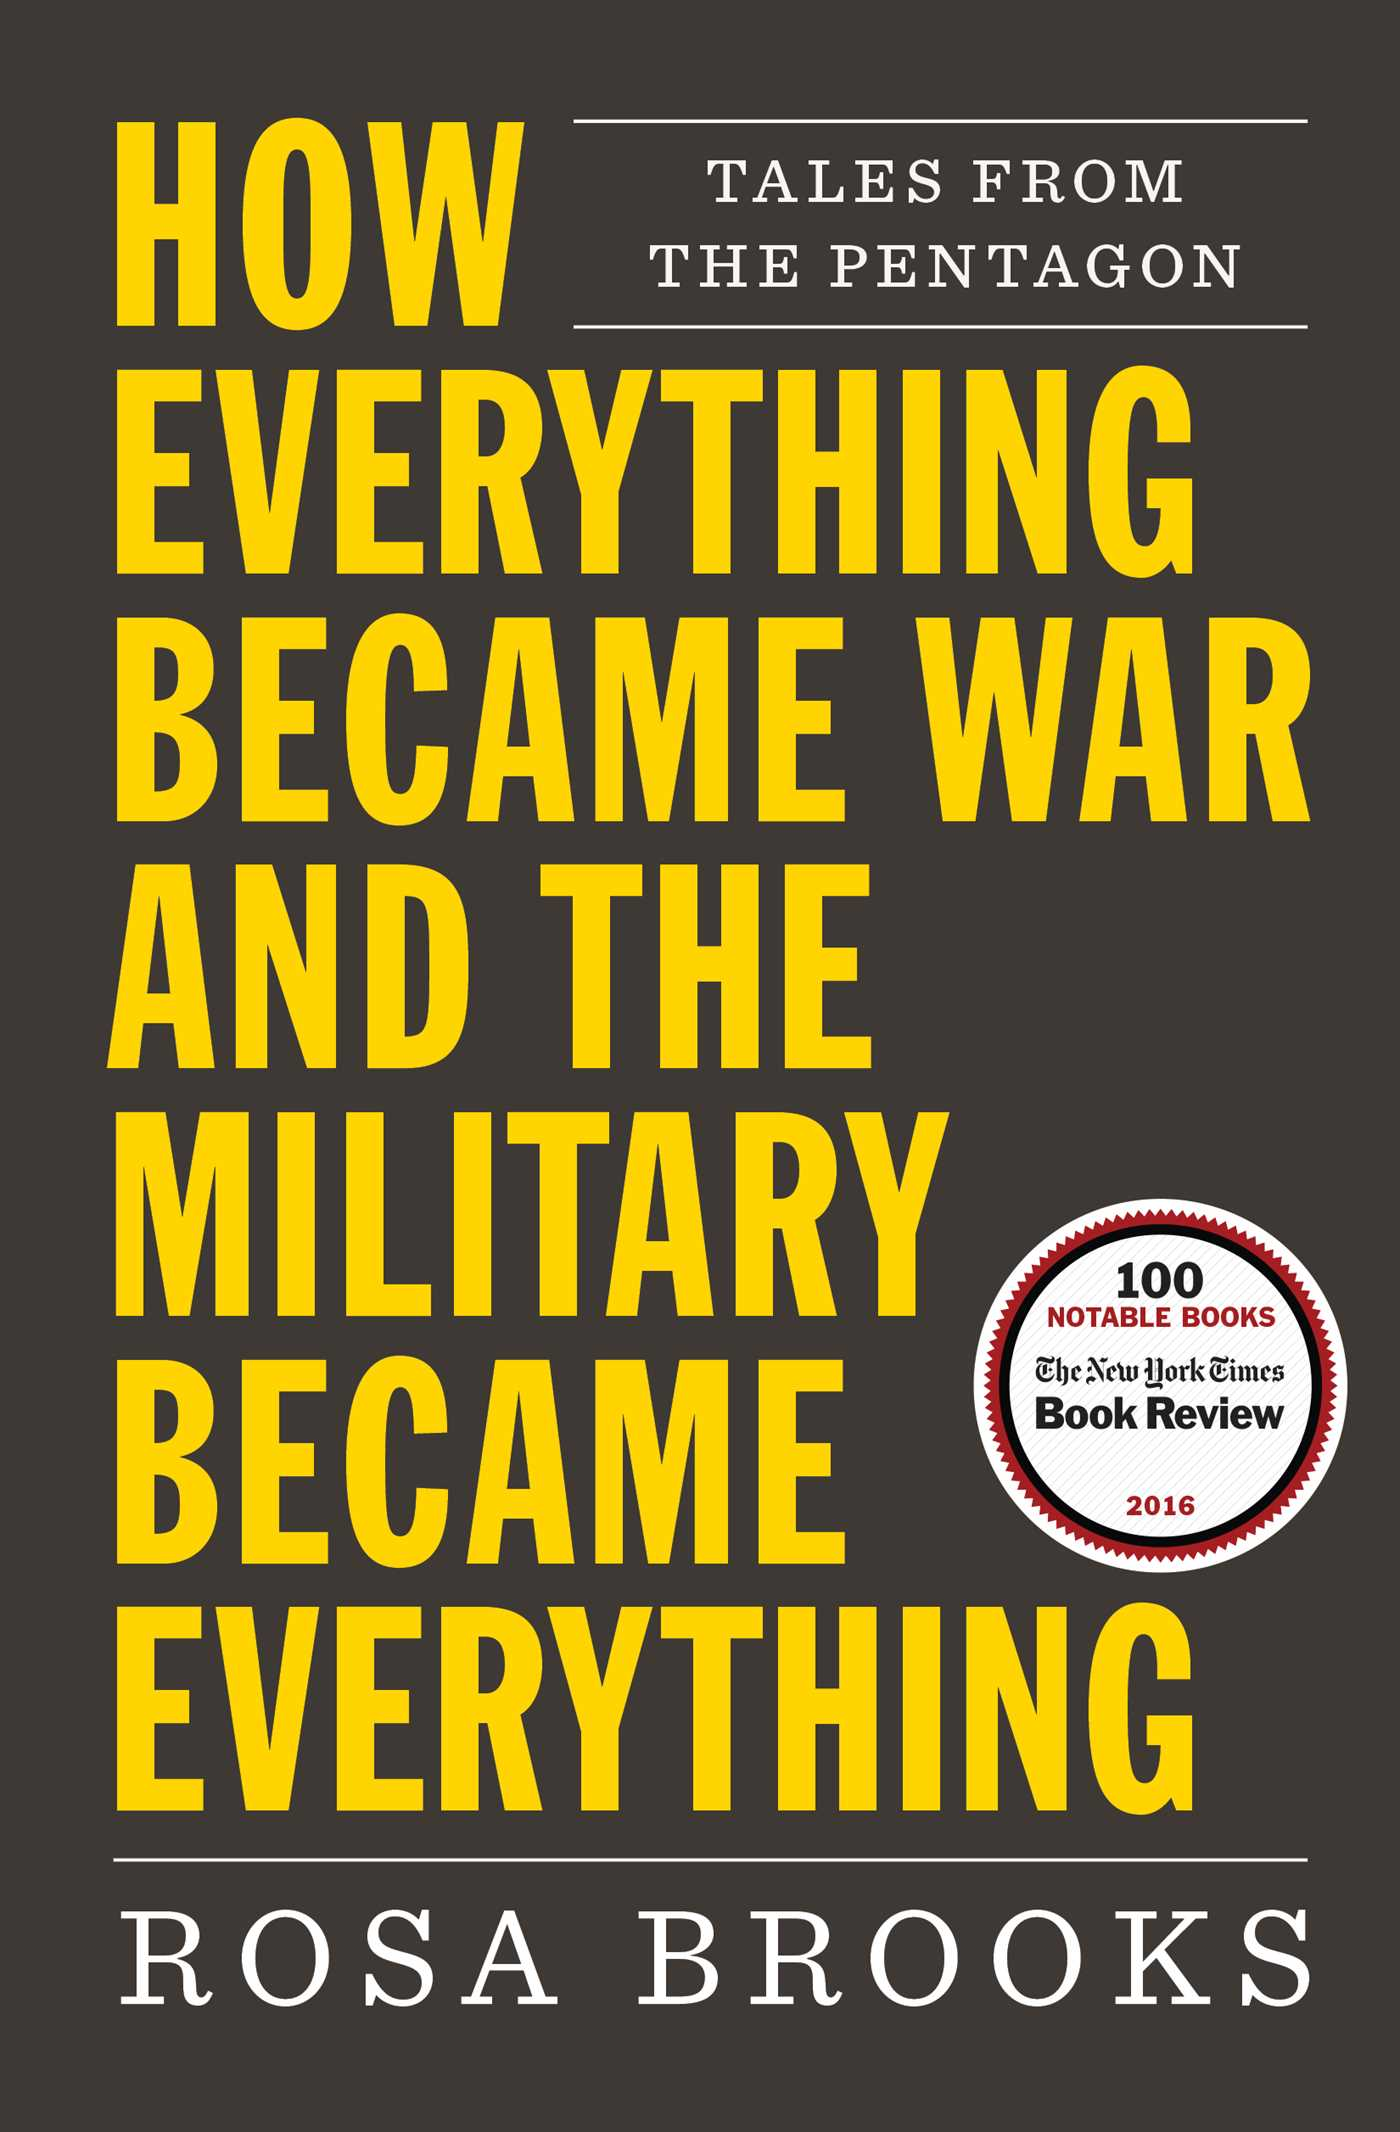 How everything became war and the military became everything 9781476777870 hr